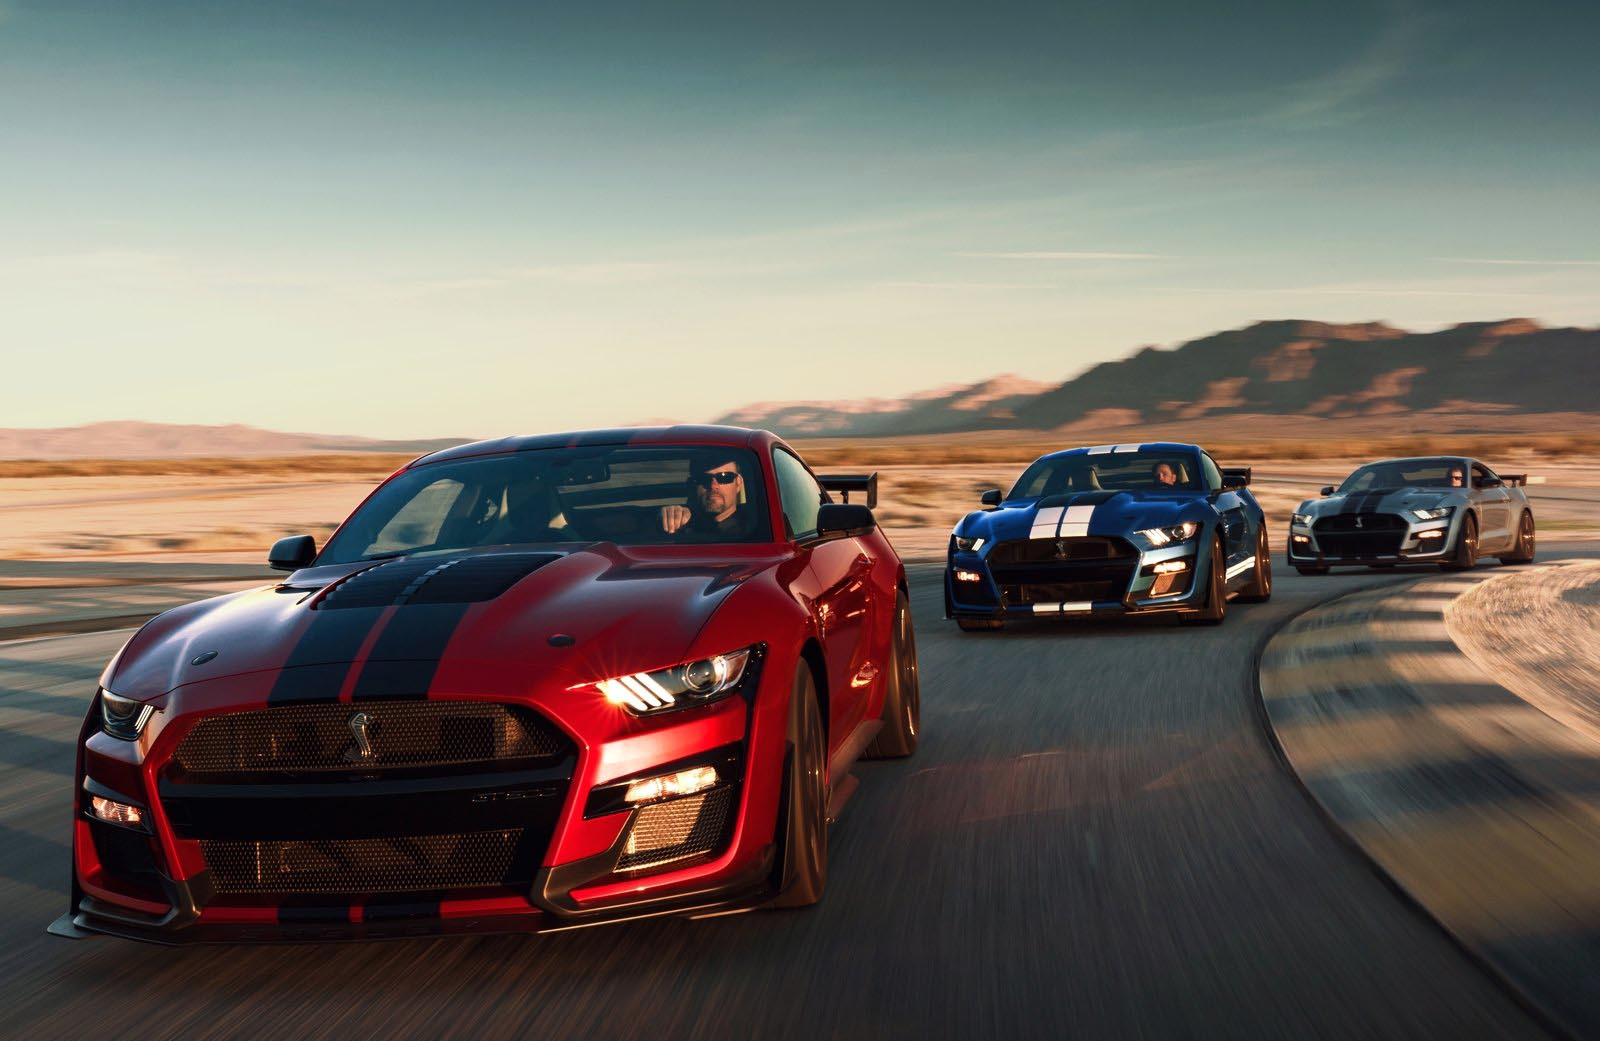 Photo of Η Shelby GT500 είναι η ταχύτερη Ford Mustang που έχει υπάρξει!